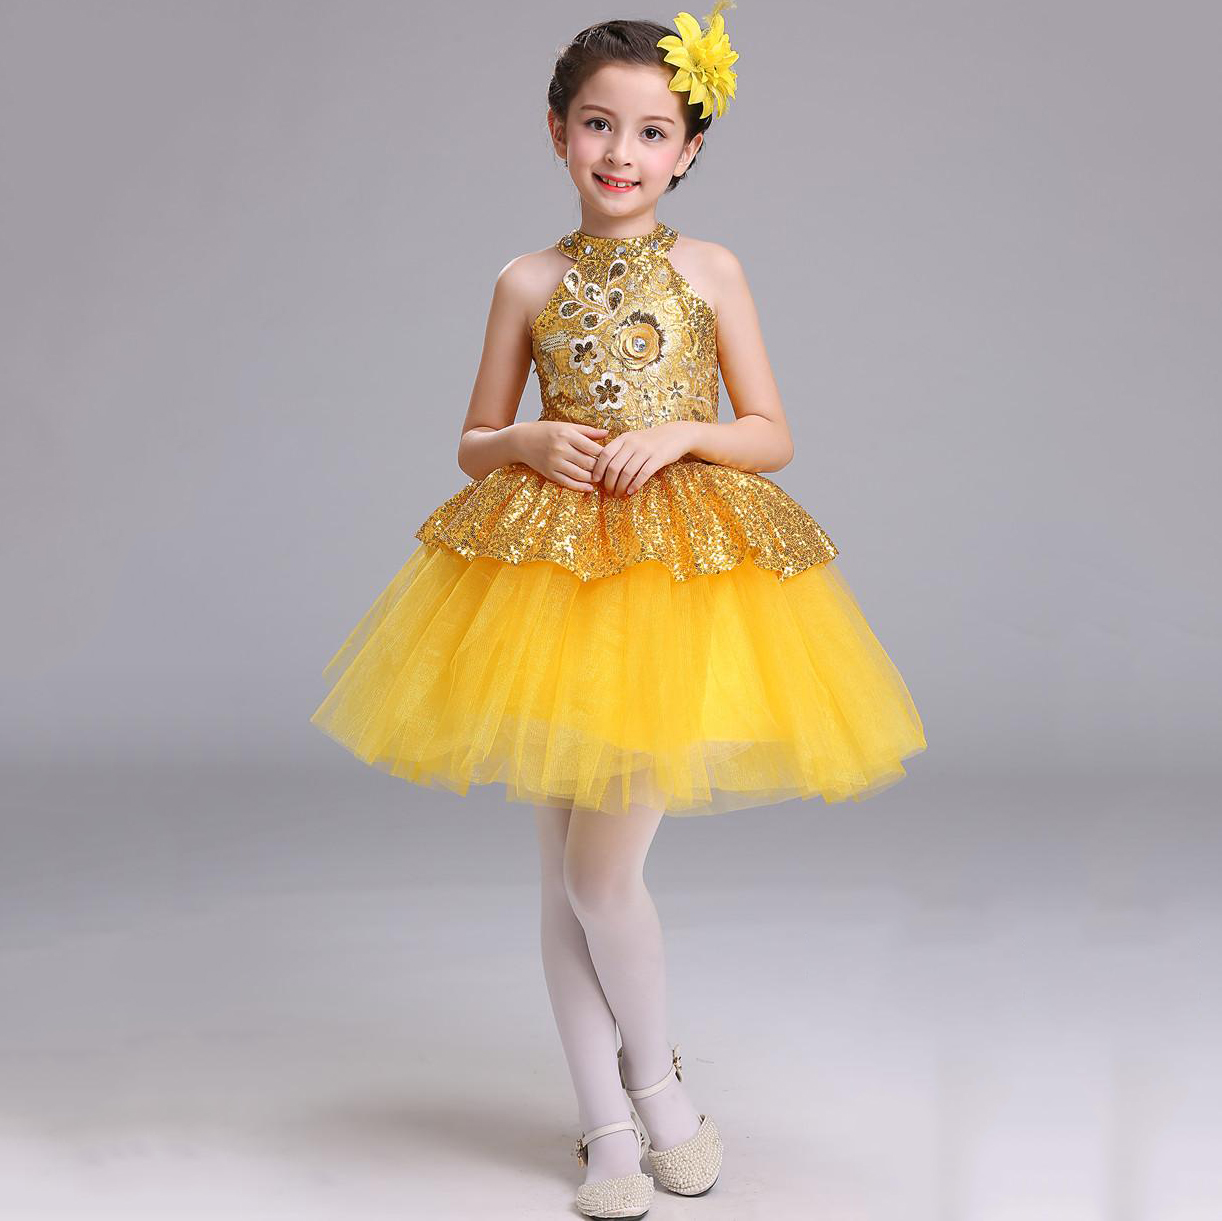 все цены на Children Summer Clothing Girls Bling Bling Sequins Top Graduation Party Jazz Dance Dress Girls Kids 2 3 4 5 6 7 To 14 Years Old